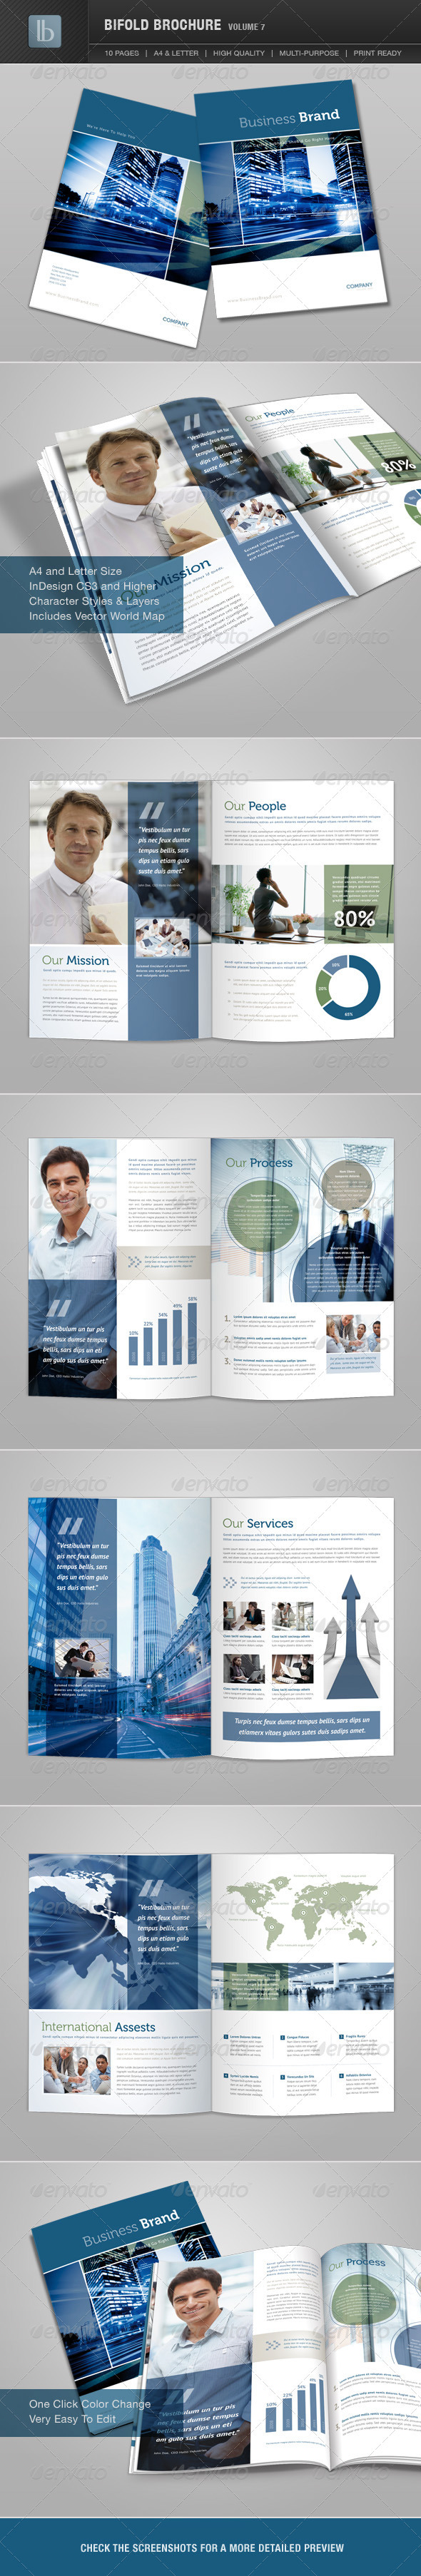 Bifold Brochure | Volume 7 - Corporate Brochures